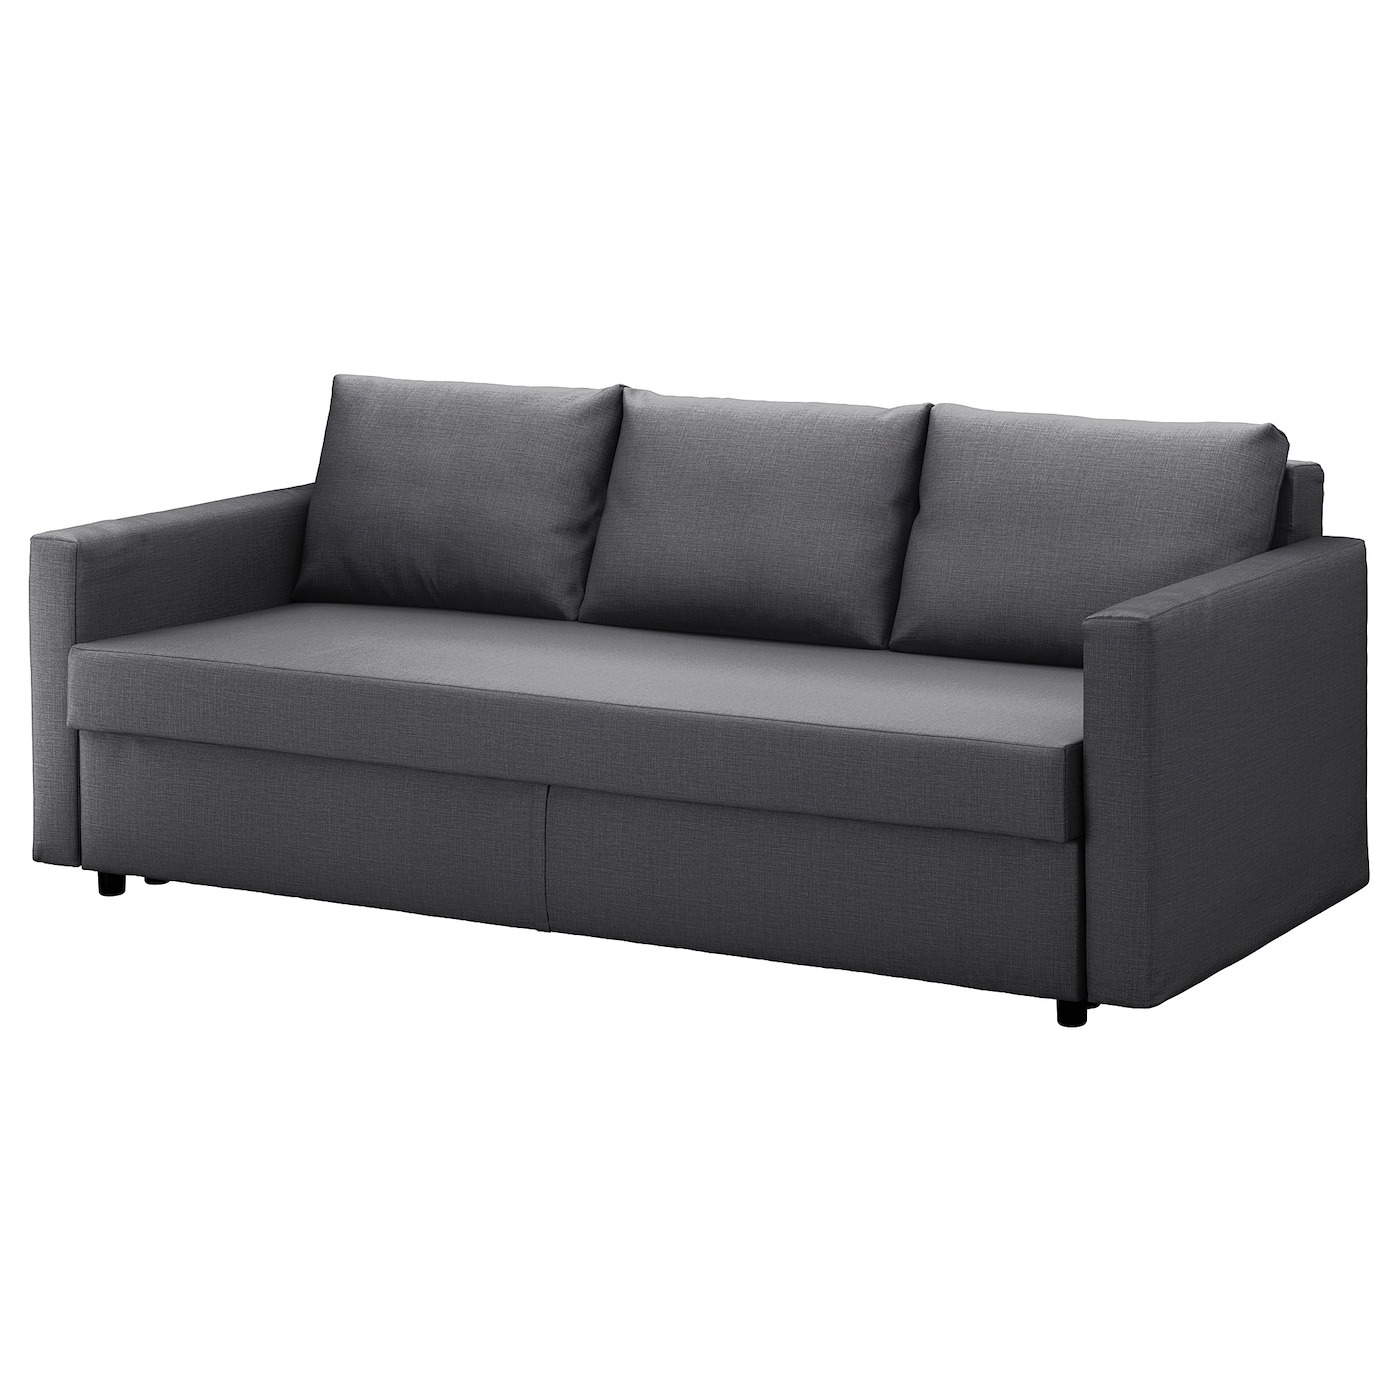 Schlafsofa ikea  FRIHETEN Three-seat sofa-bed Skiftebo dark grey - IKEA